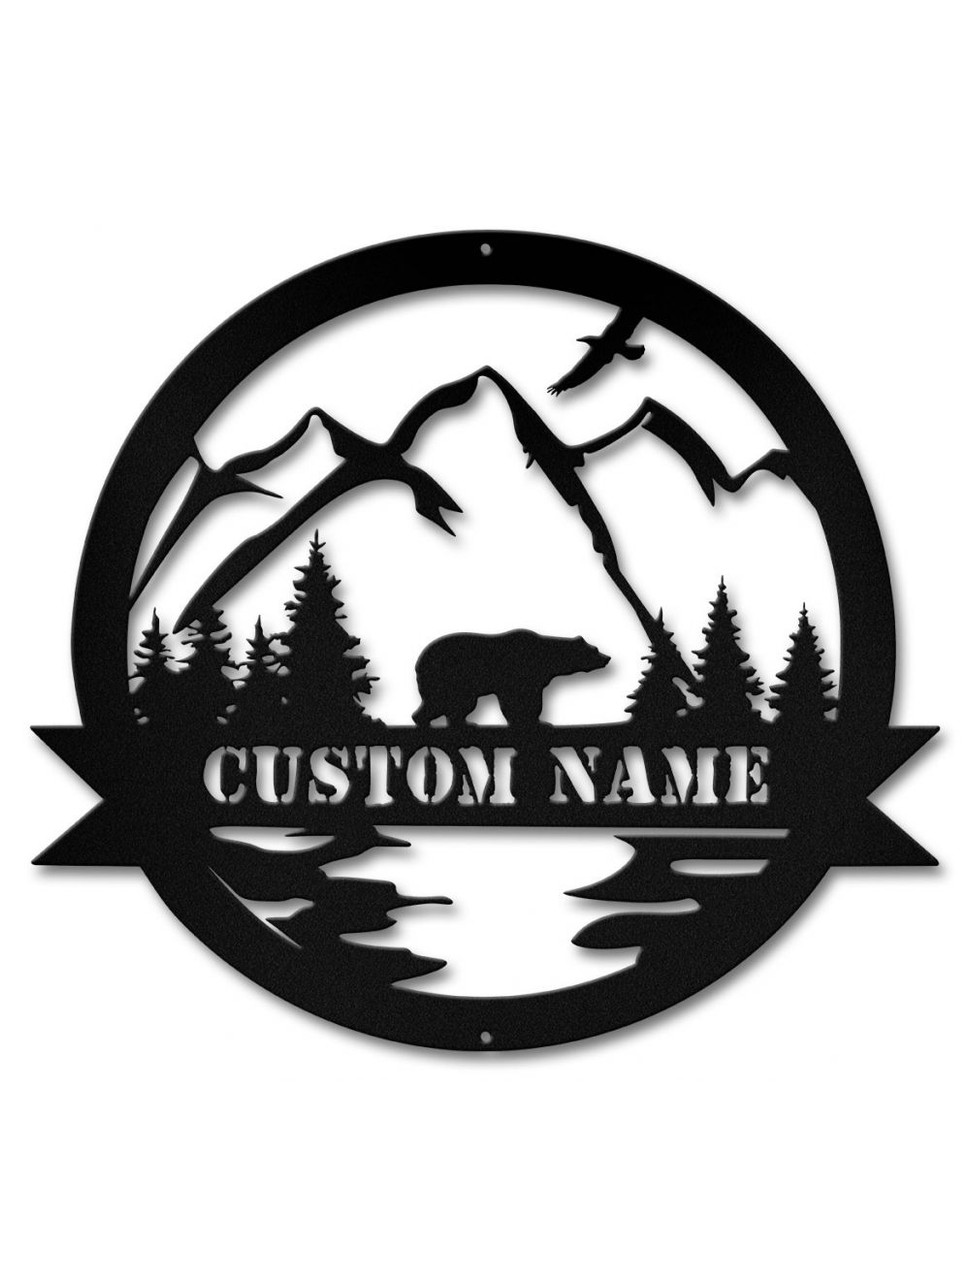 Alpine Bear Cutout Metal Sign - Personalized 15 x 14 Inches